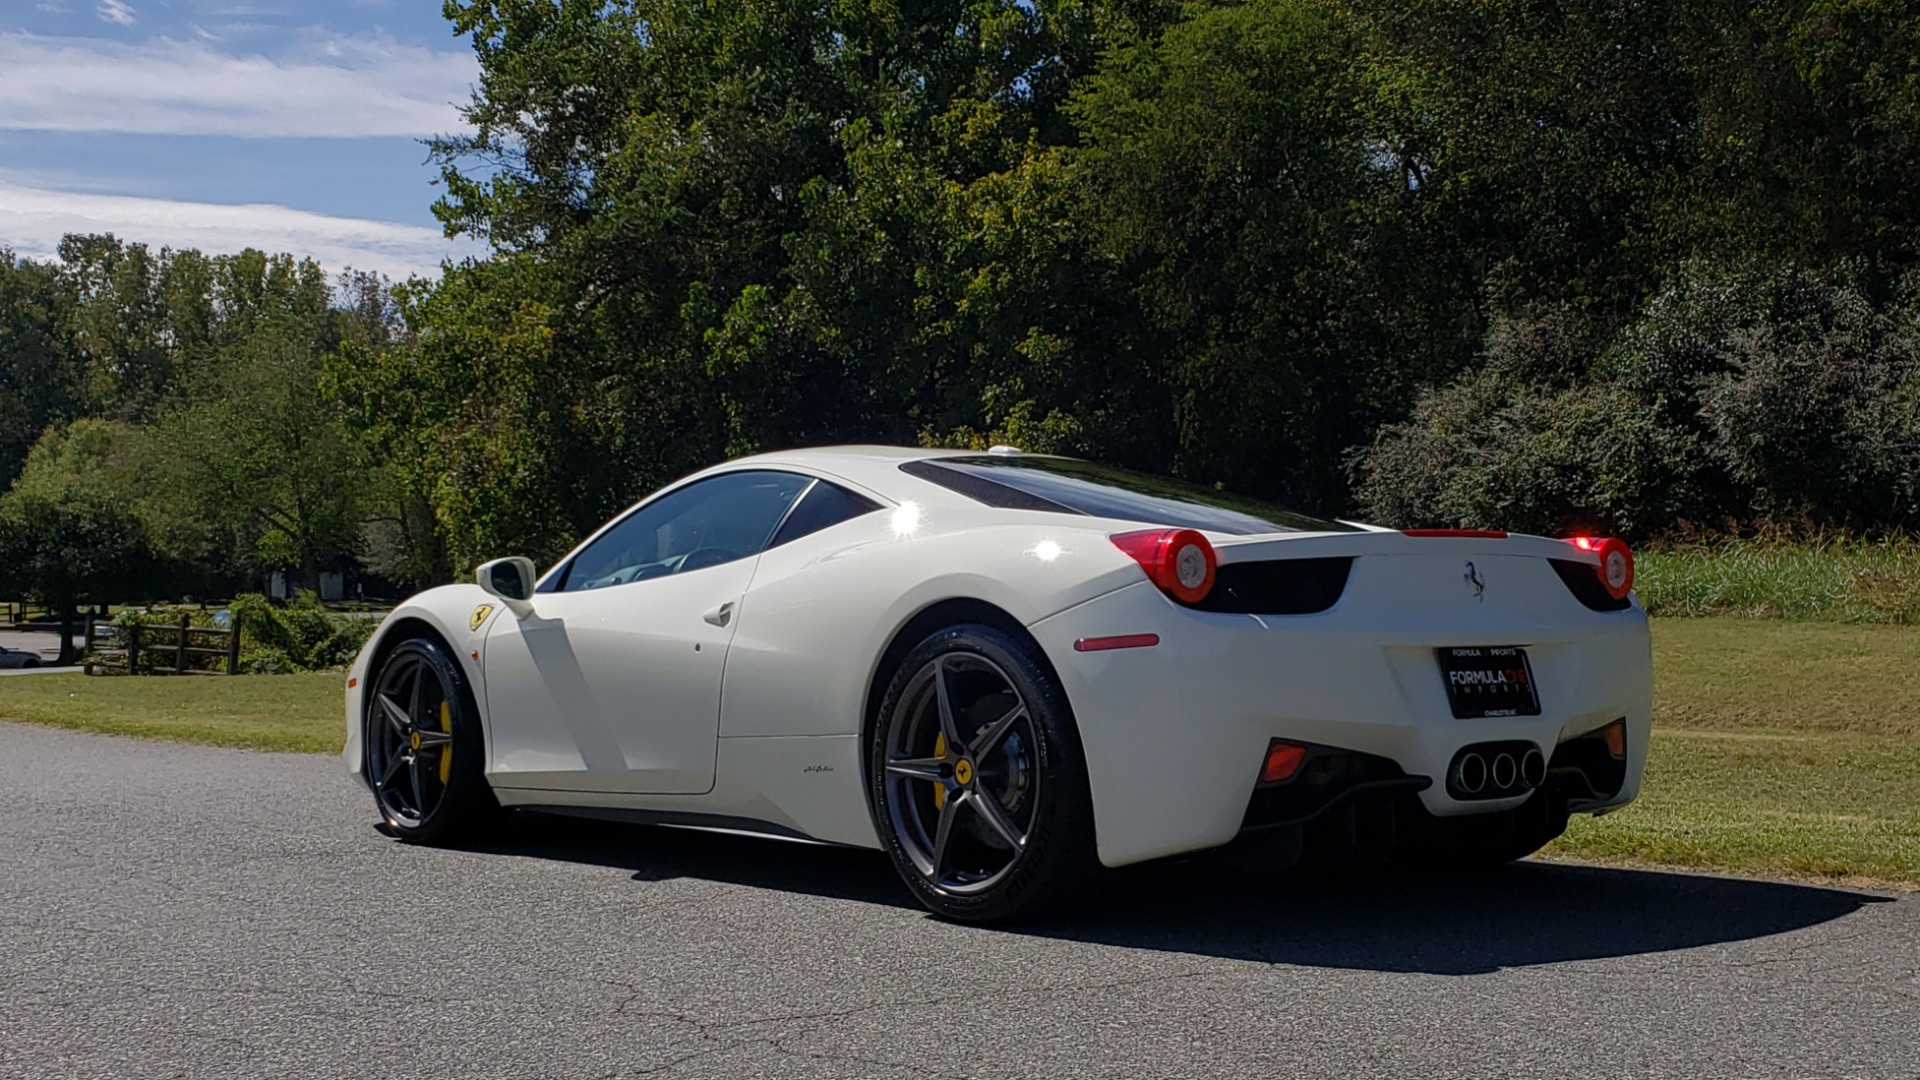 Used 2012 Ferrari 458 ITALIA COUPE / 4.5L V8 / 7-SPEED AUTO / LOW MILES SUPER CLEAN for sale $169,999 at Formula Imports in Charlotte NC 28227 11